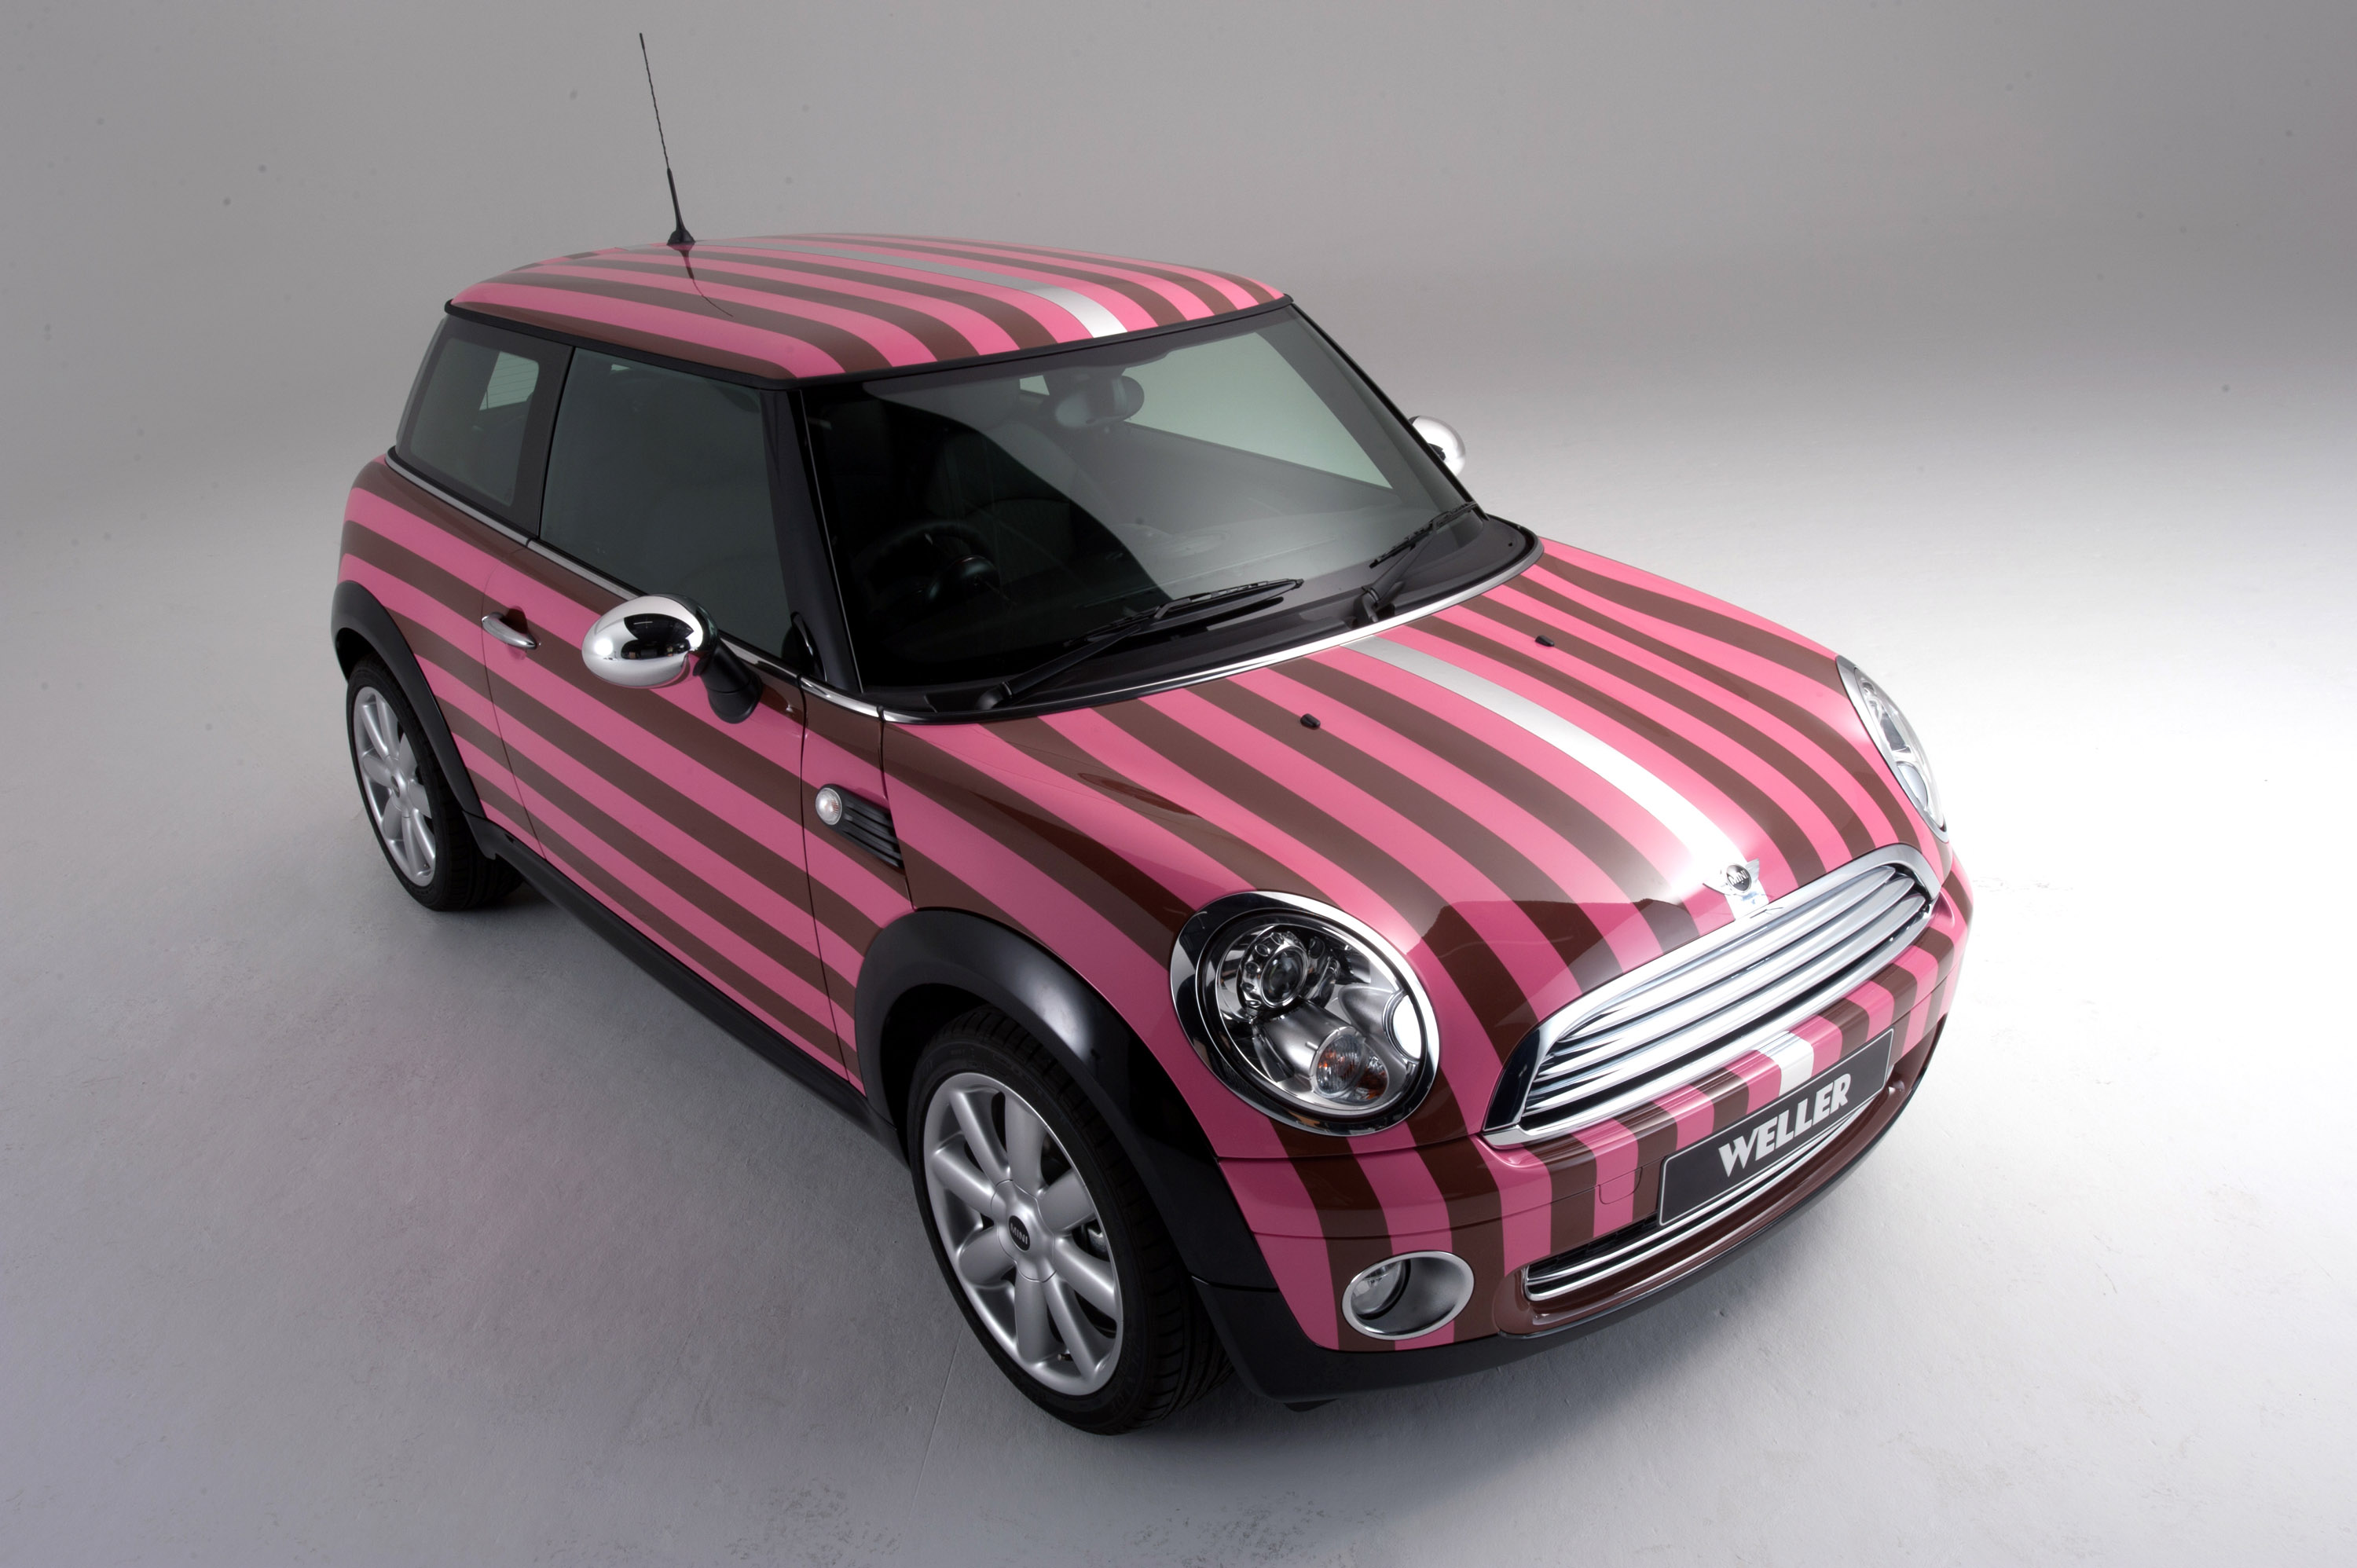 Paul Weller MINI Cooper A One off Car For Charity